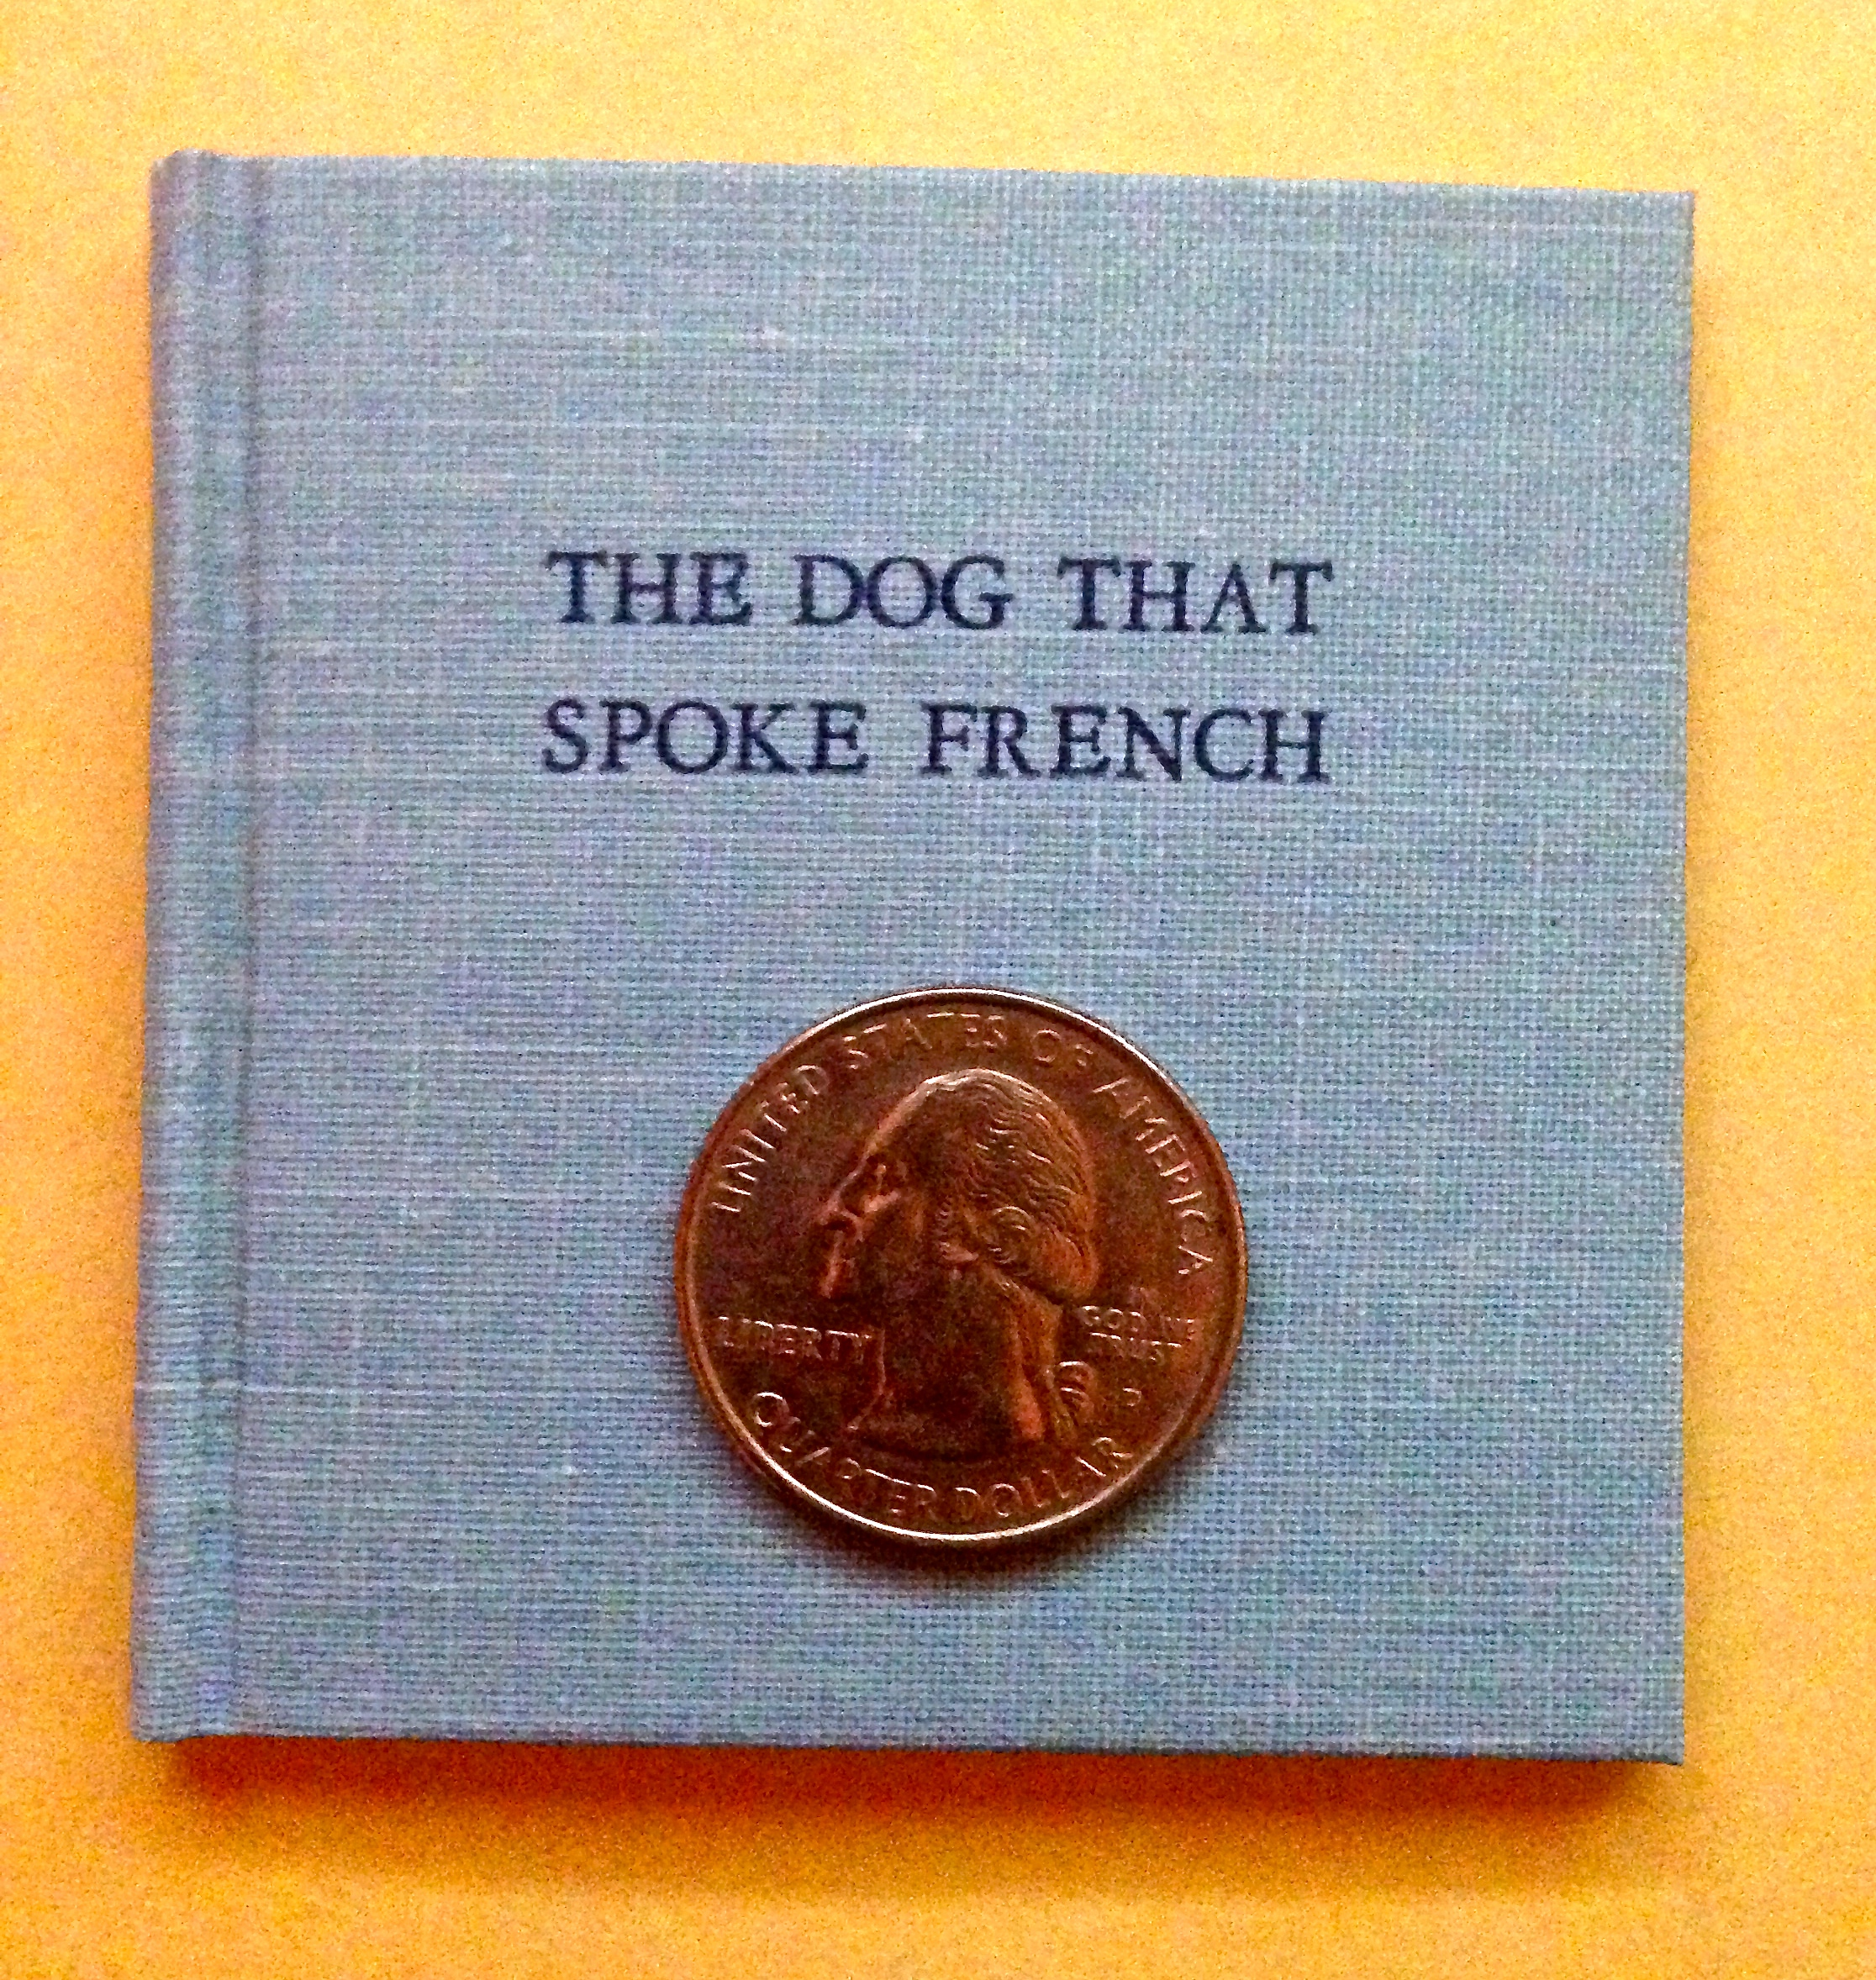 The Dog That Spoke French and a quarter.